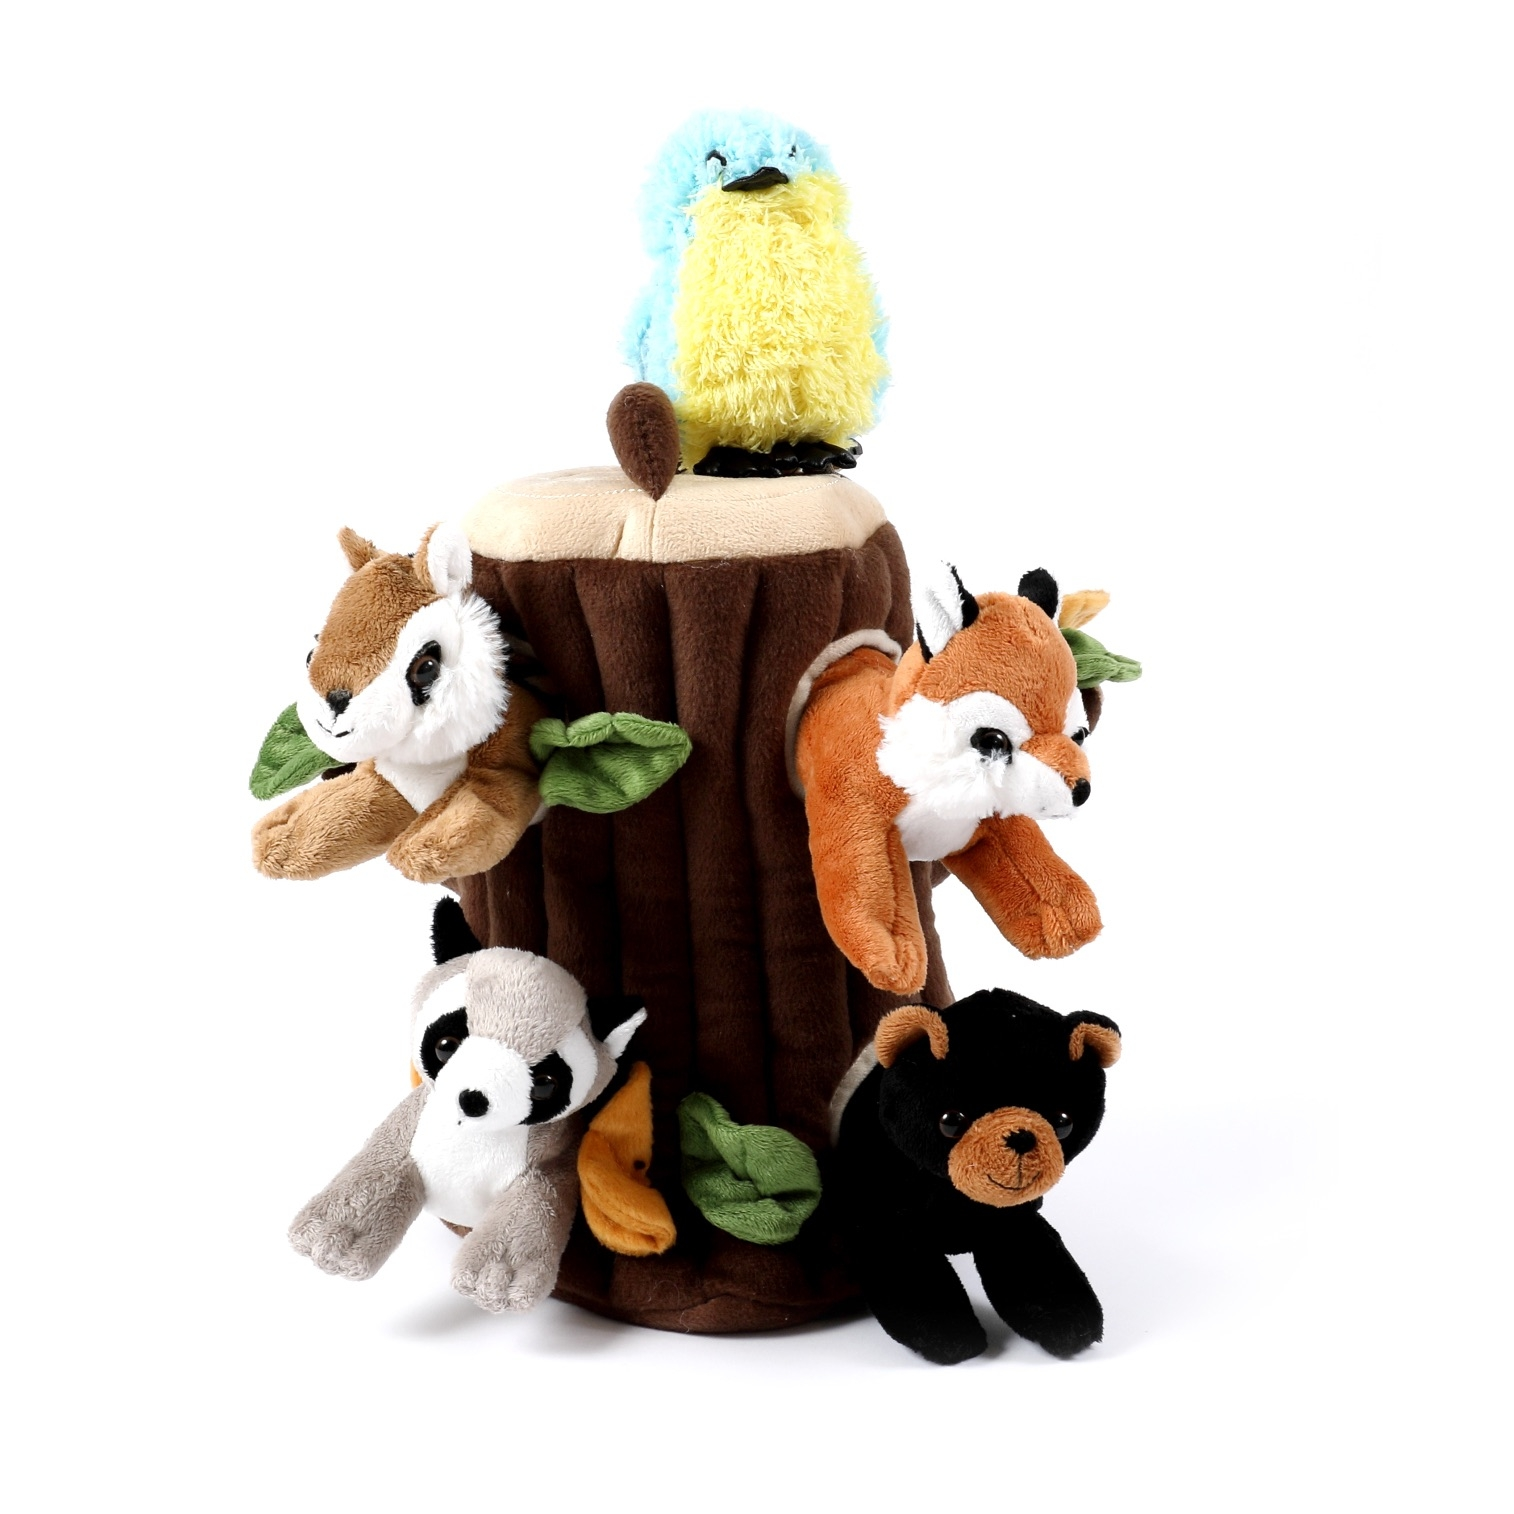 Alternate Plush Treehouse with Friends image 0